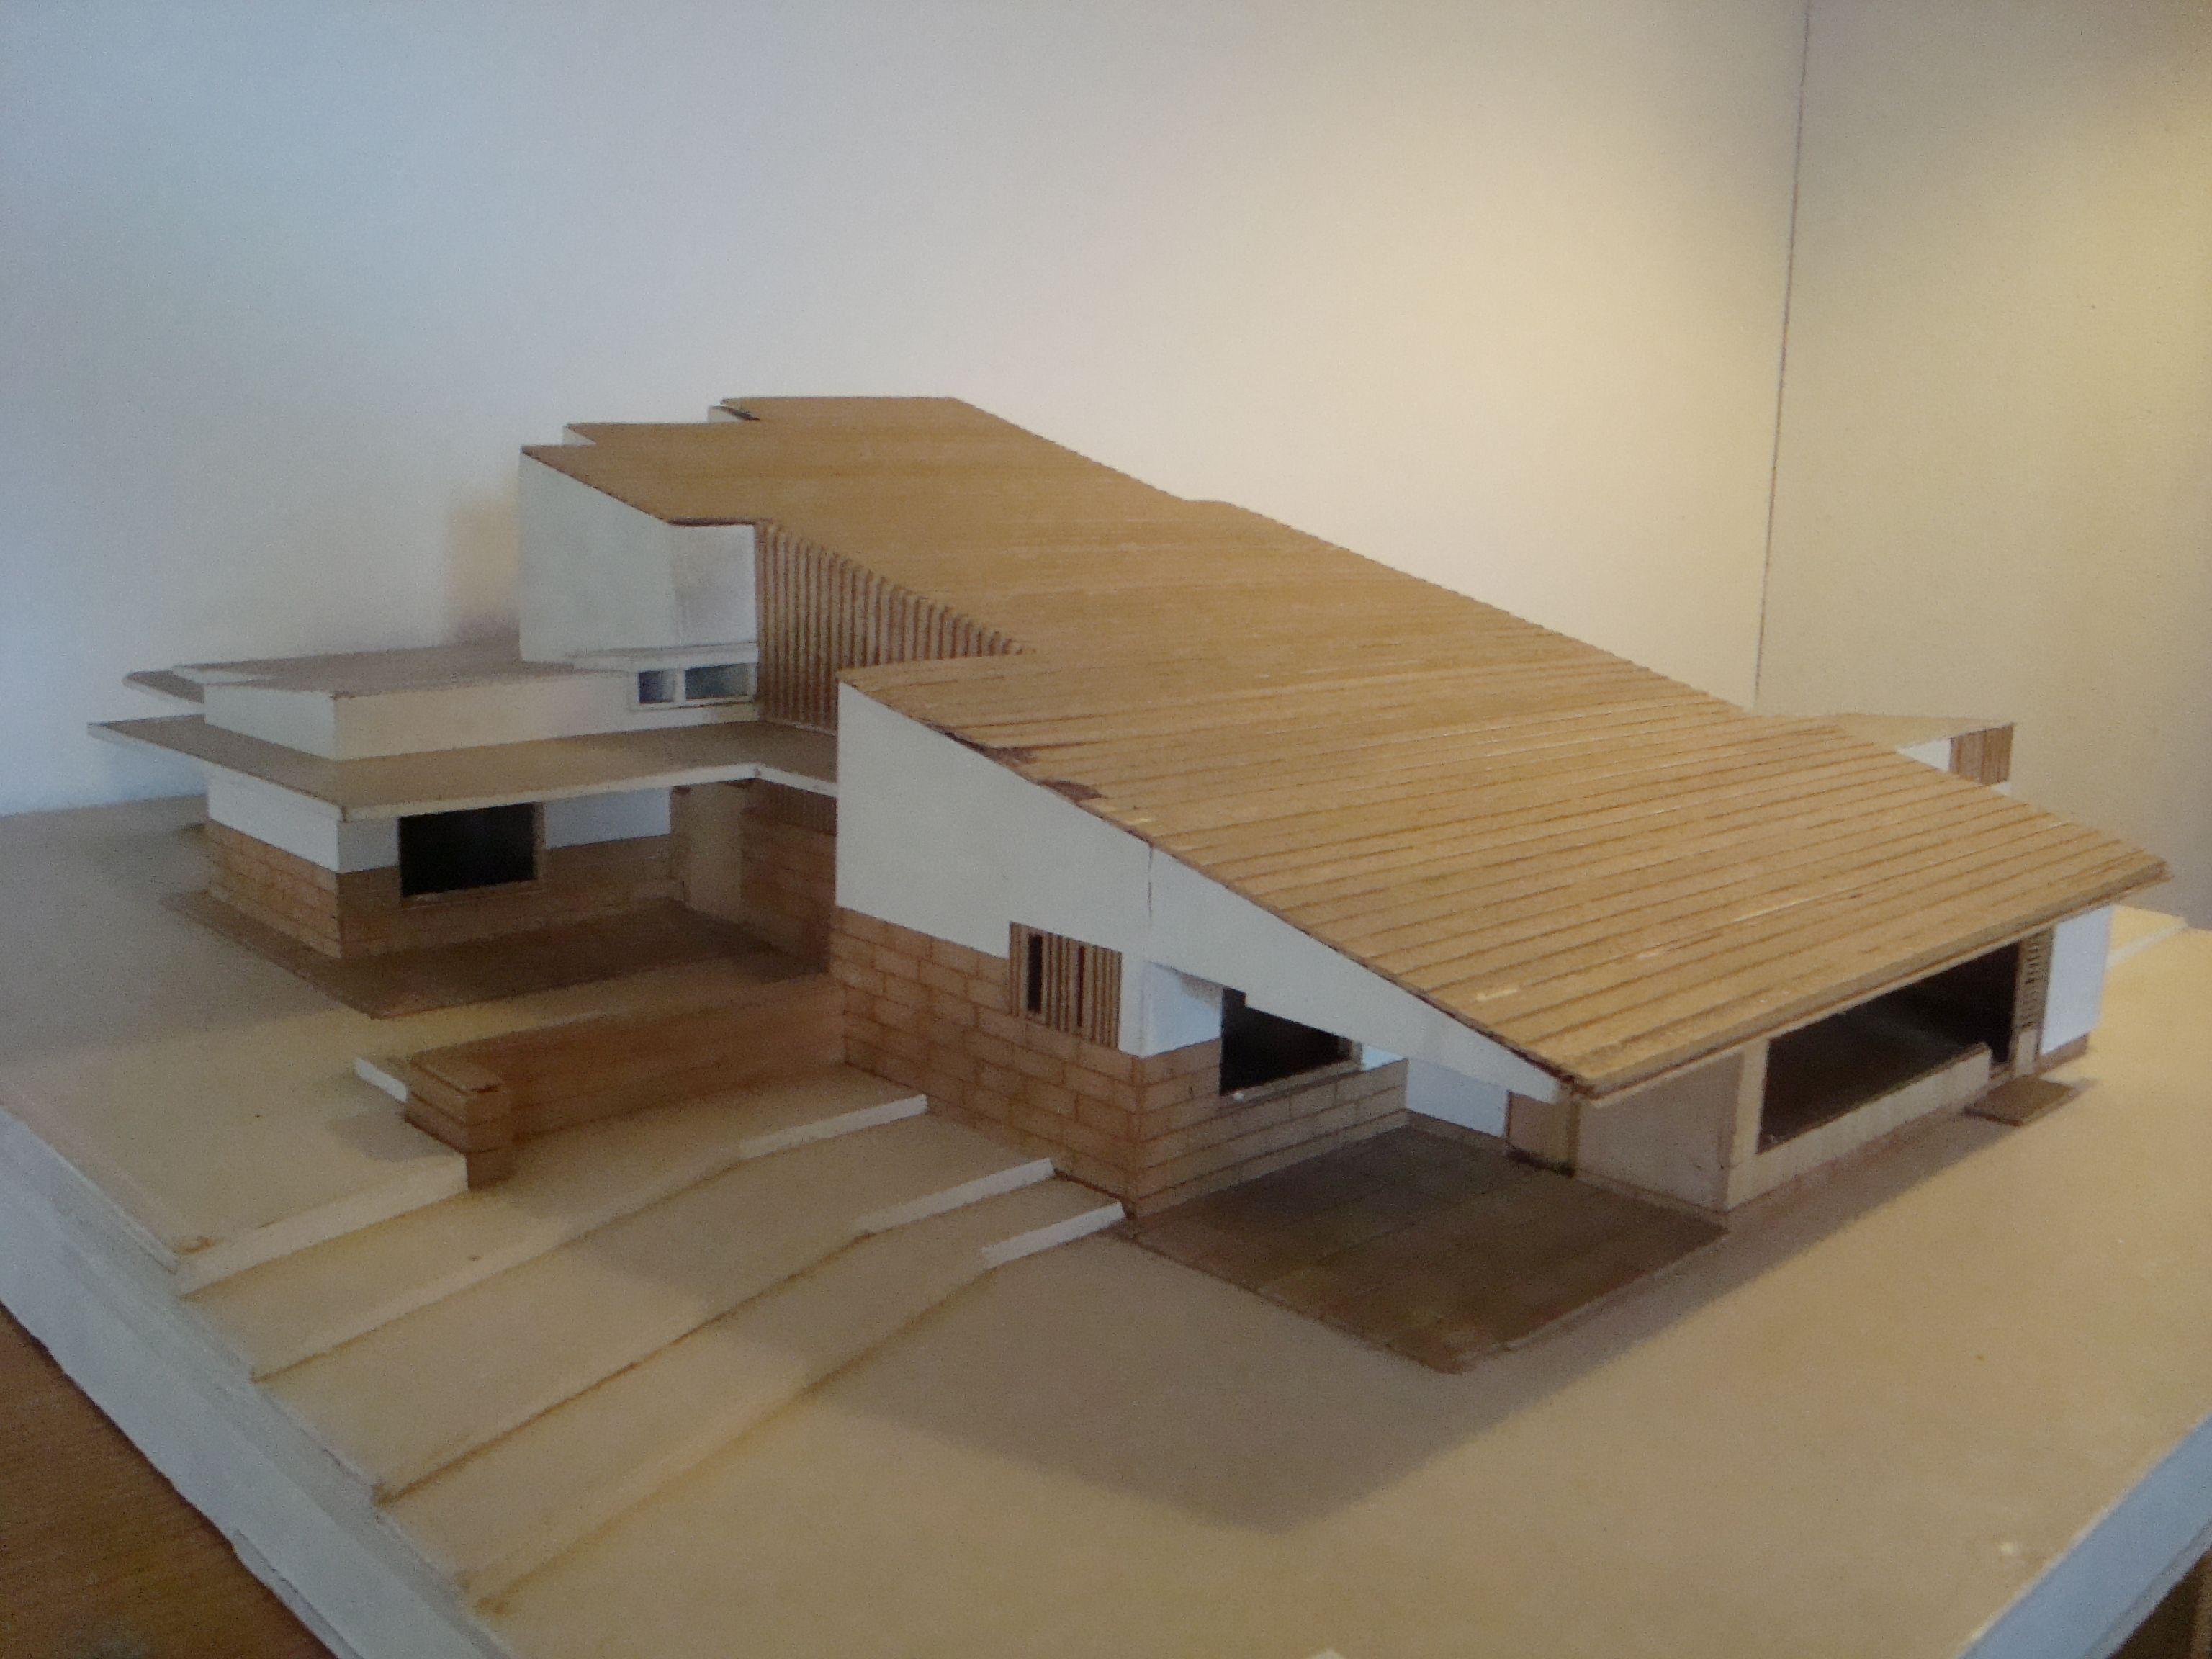 maison louis carr alvar aalto model architecture